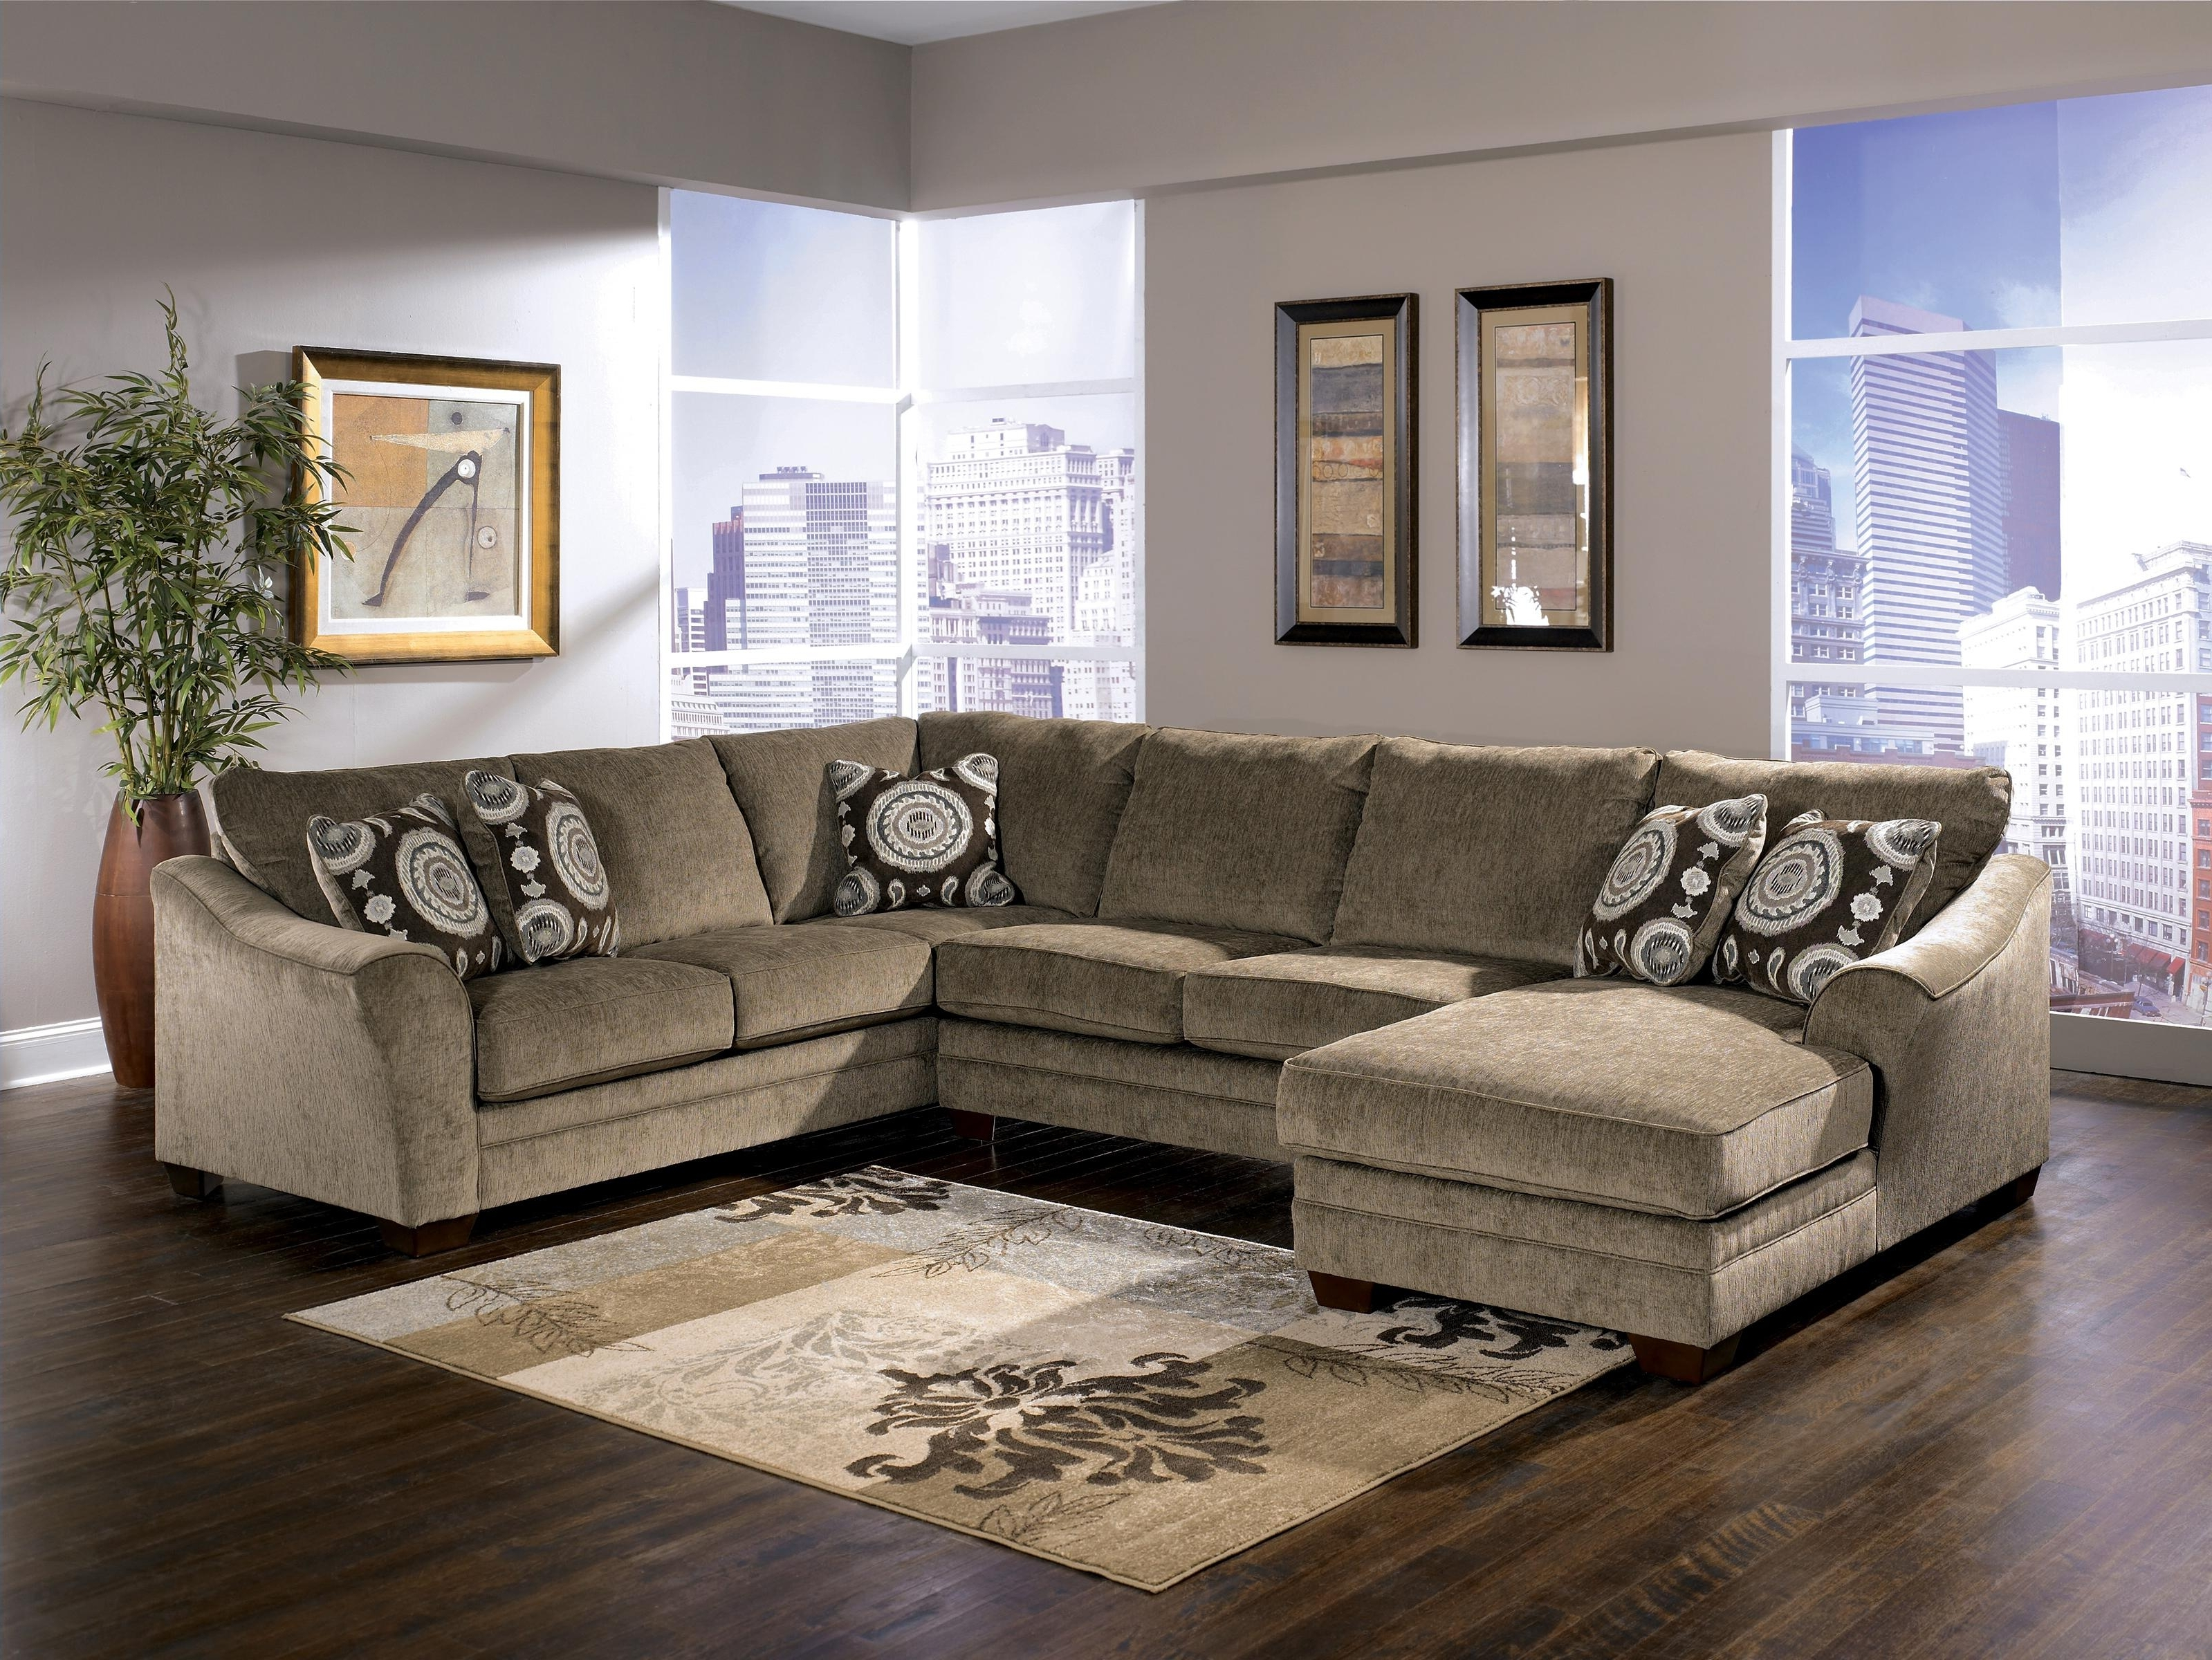 Well Liked El Paso Tx Sectional Sofas Intended For Signature Designashley Cosmo – Marble Sectional Sofa With (View 19 of 20)